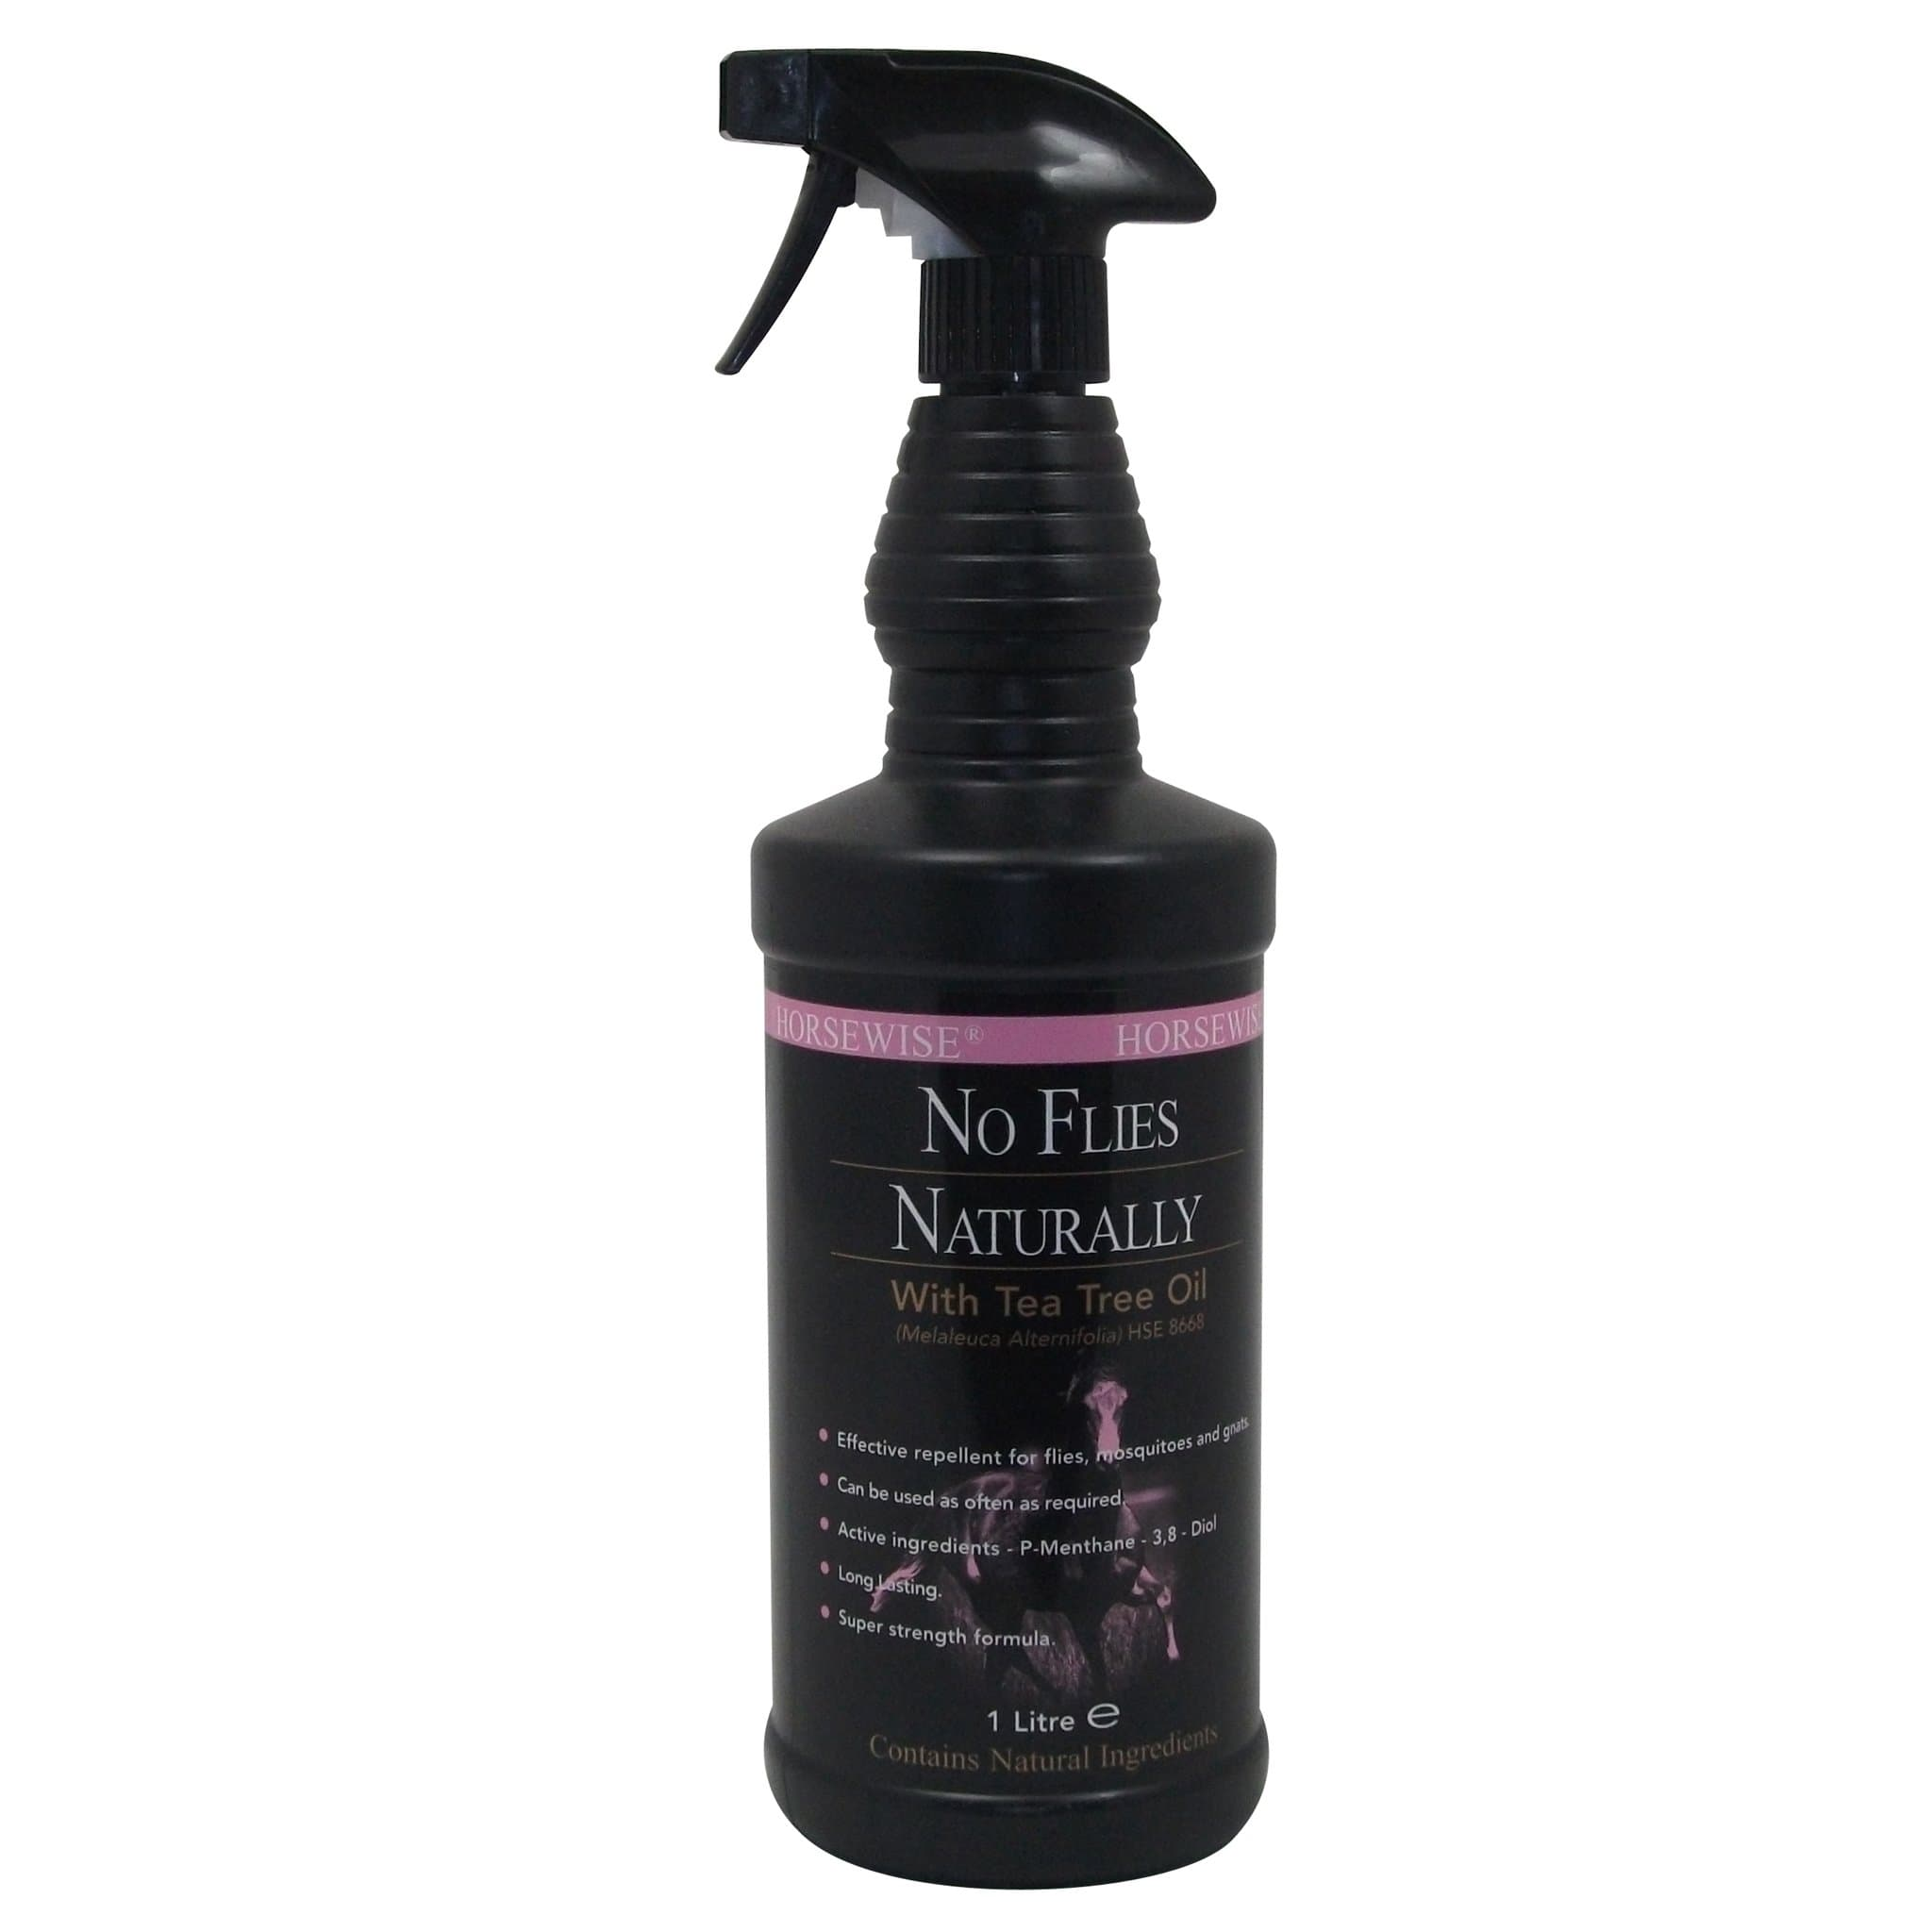 Horsewise No Flies Naturally Spray ENC0075